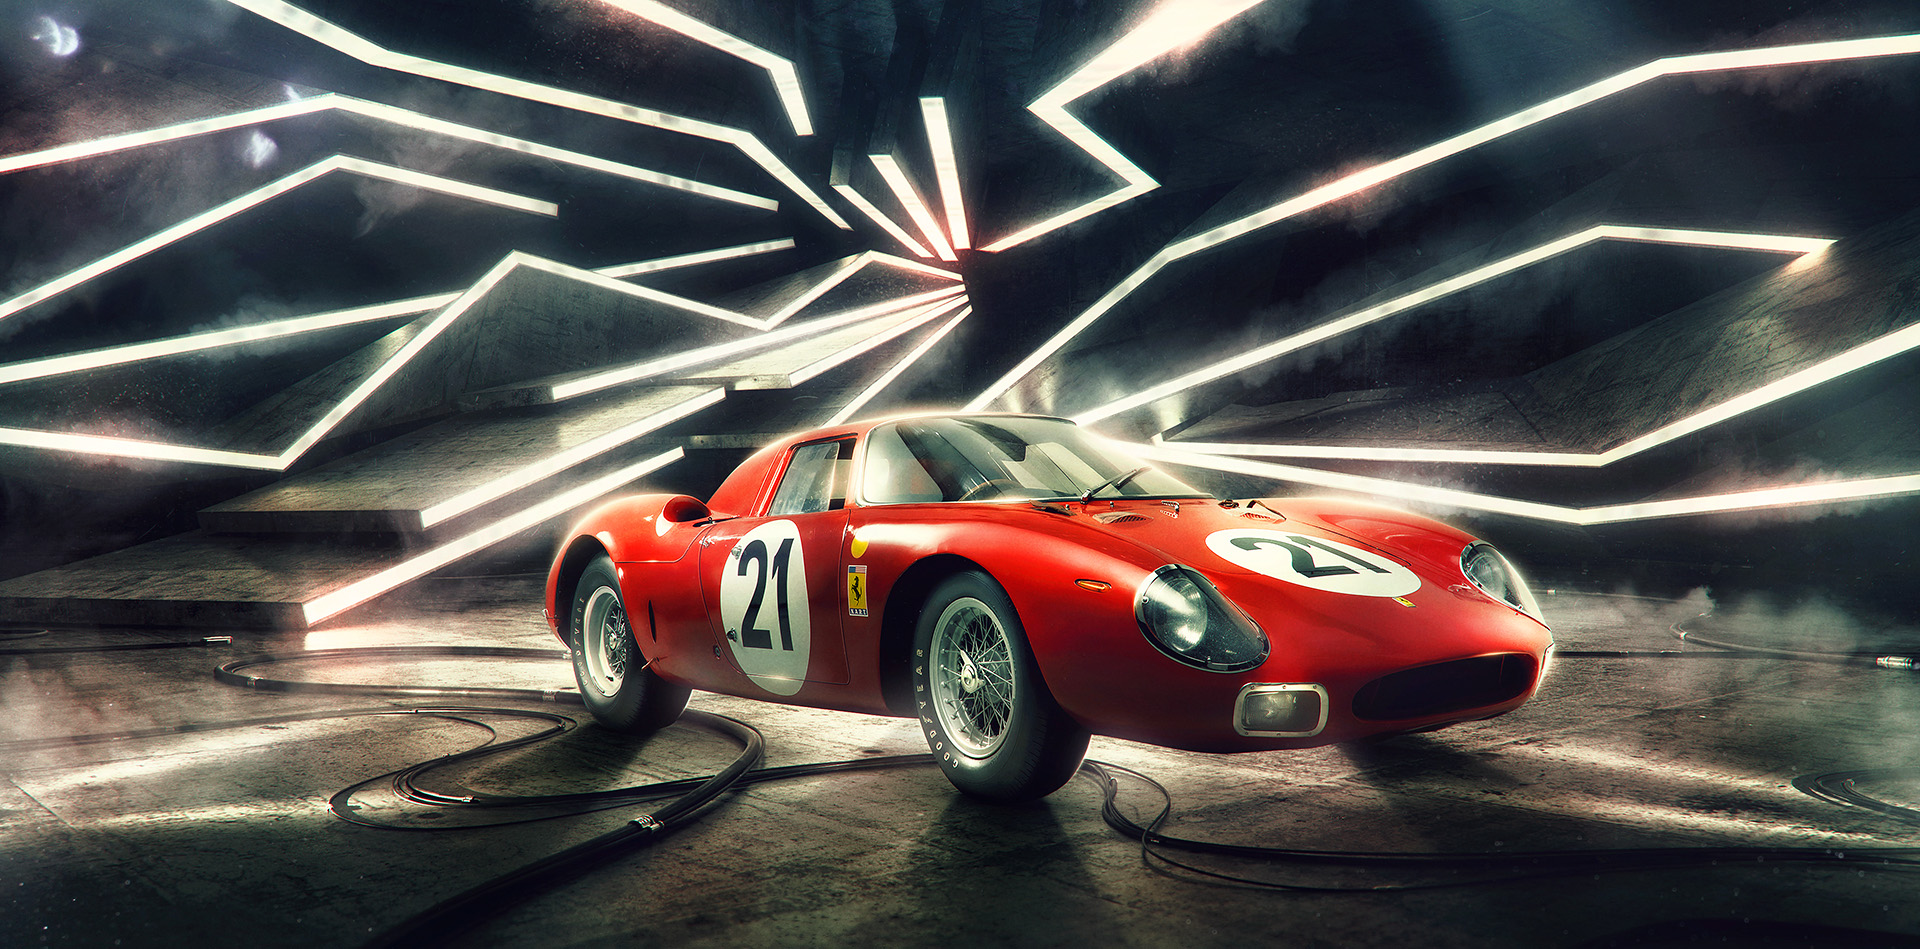 Lemans Ferrari Photographed by Blair Bunting